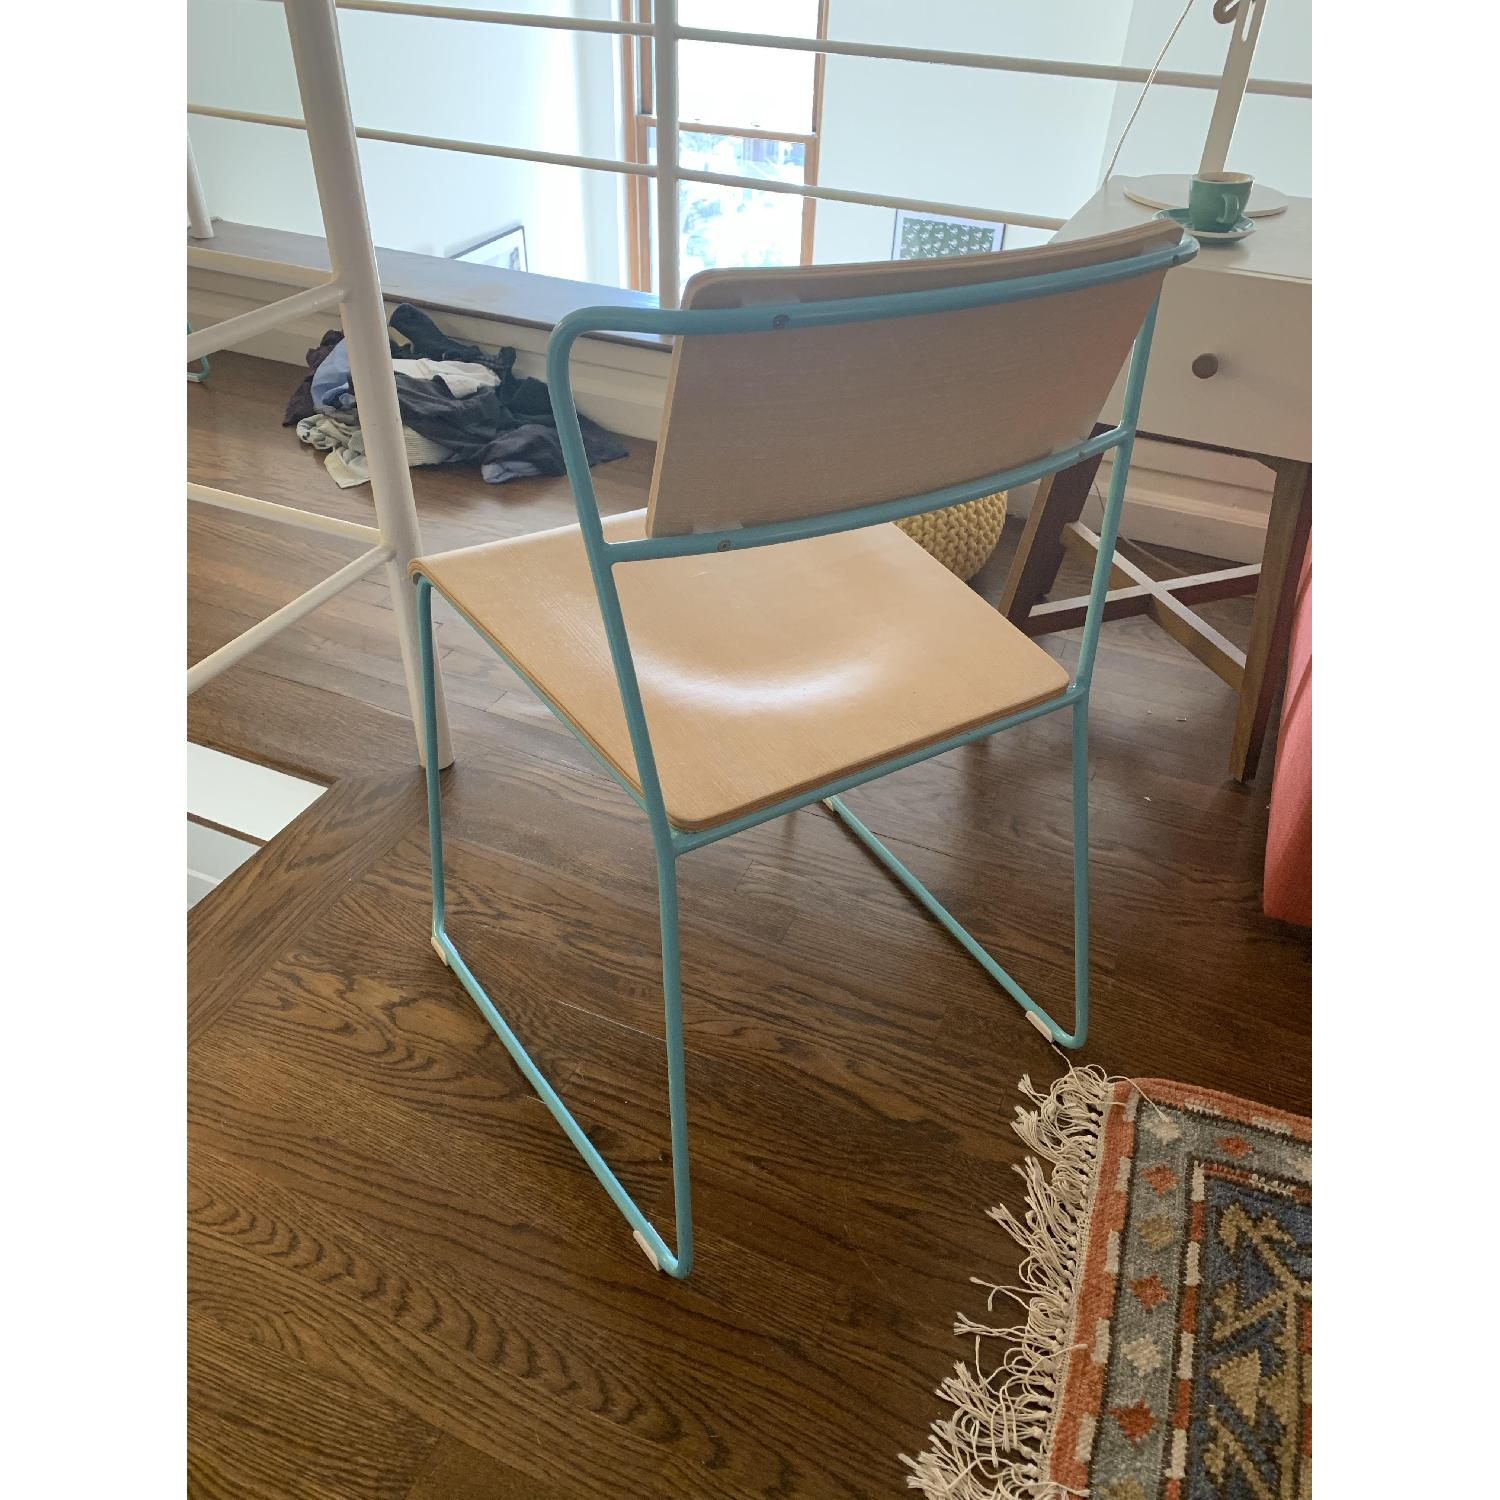 Industry West Transit Chairs in Peppermint - image-2